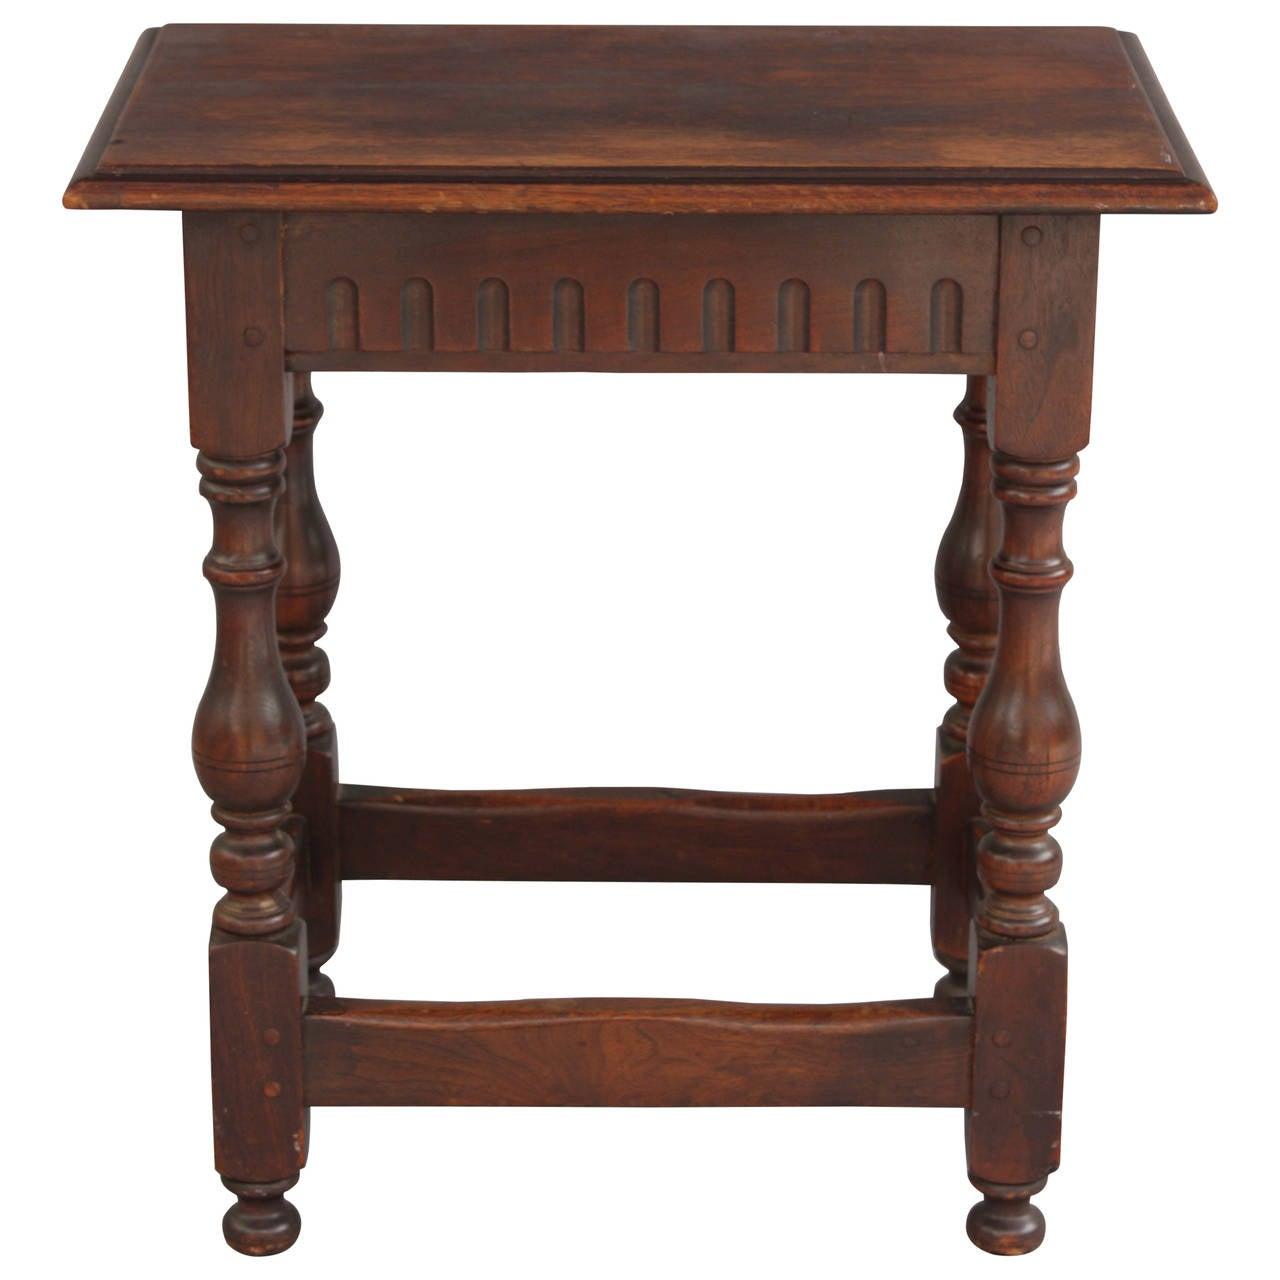 1920s walnut side table at 1stdibs for Walnut side table